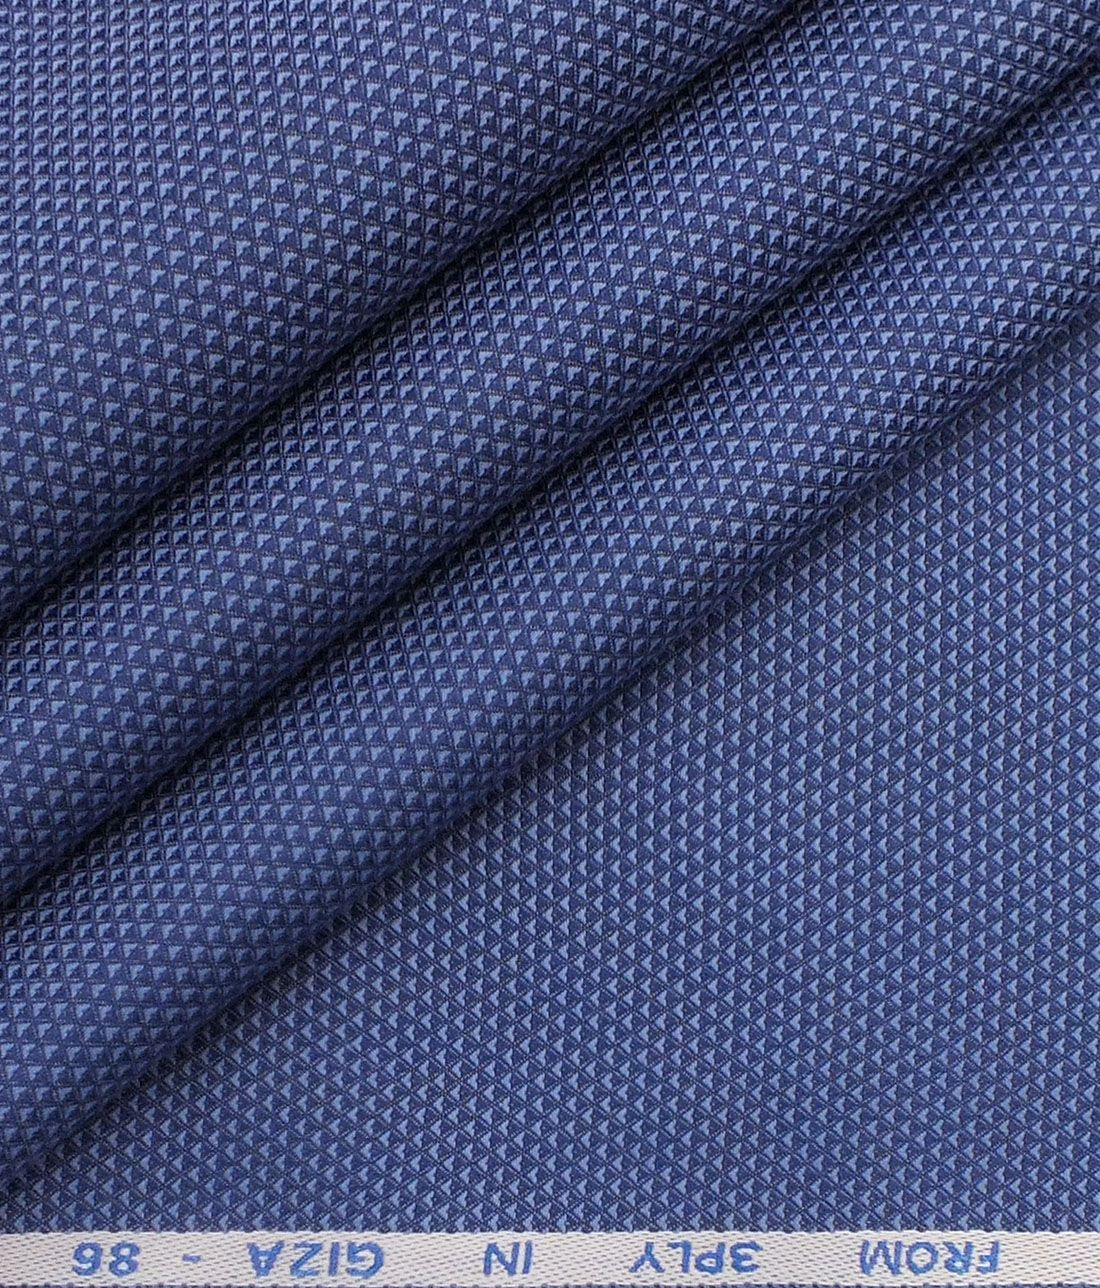 fcd04ad83 J.hampstead by Siyaram s Bright Blue 100% 3 Ply Giza Cotton Jaquard  Structured Trouser Fabric (Unstitched - 1.30 Mtr)